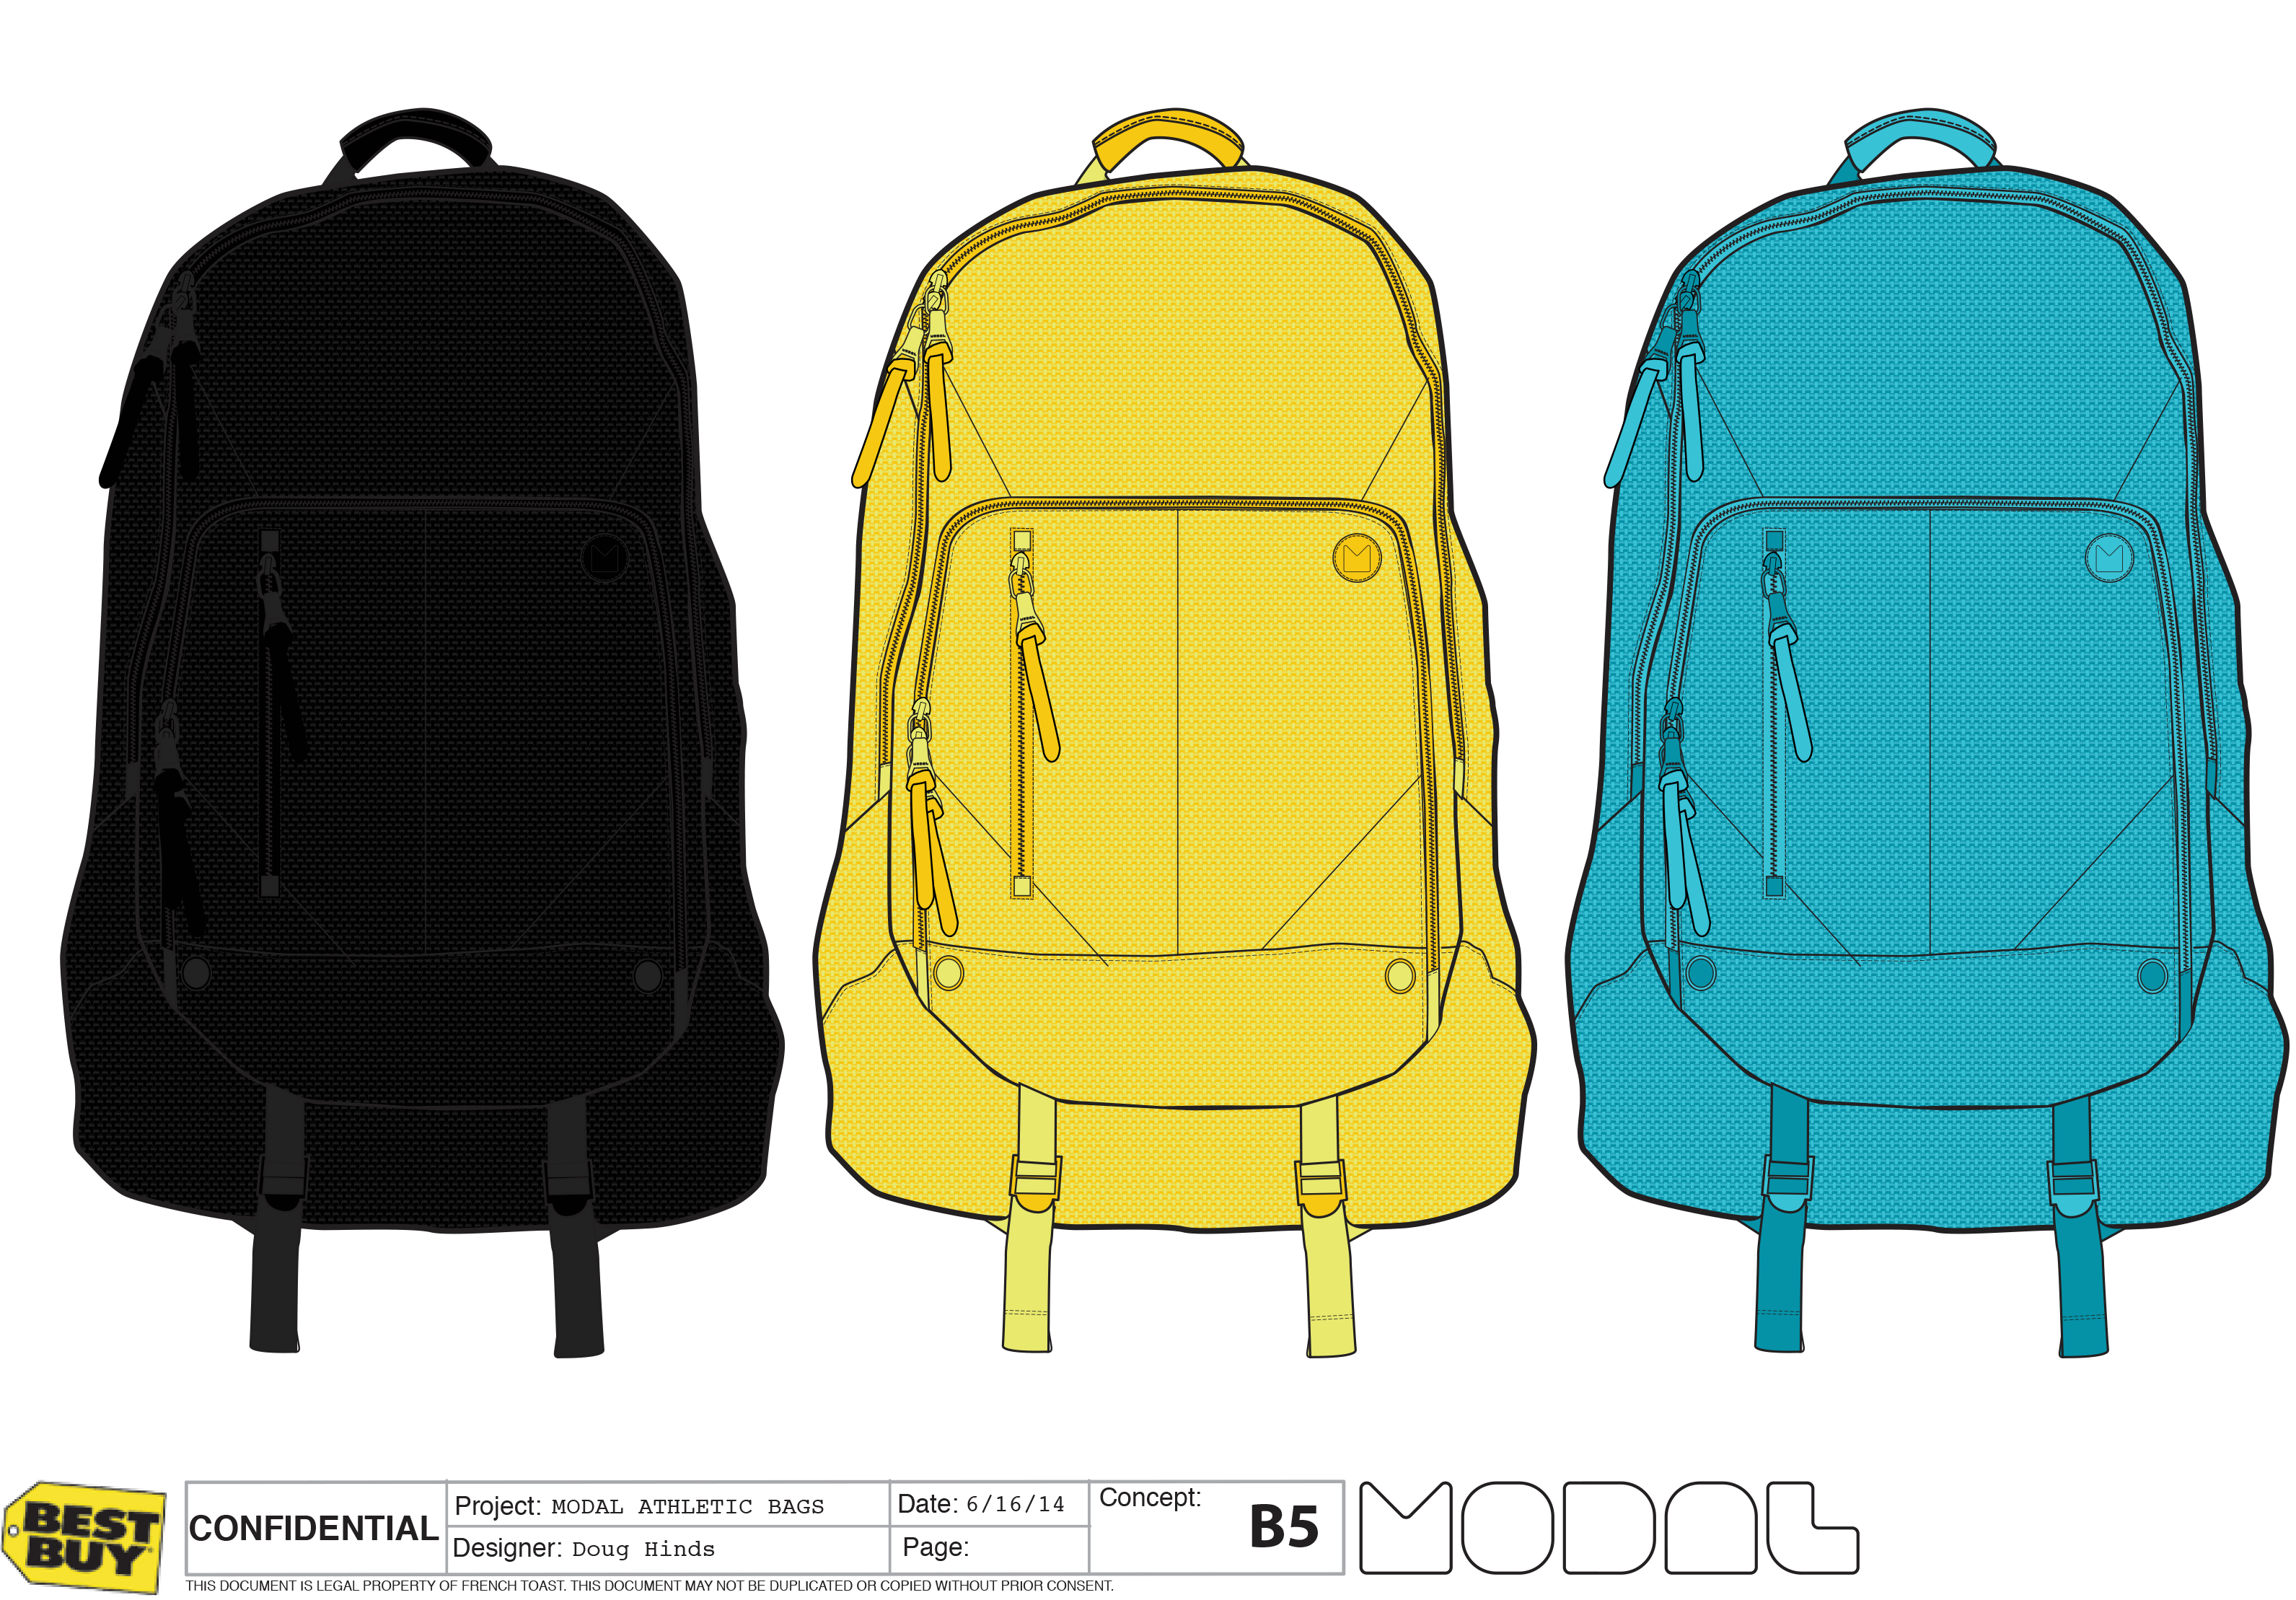 MODAL ATHLETIC BACKPACKS